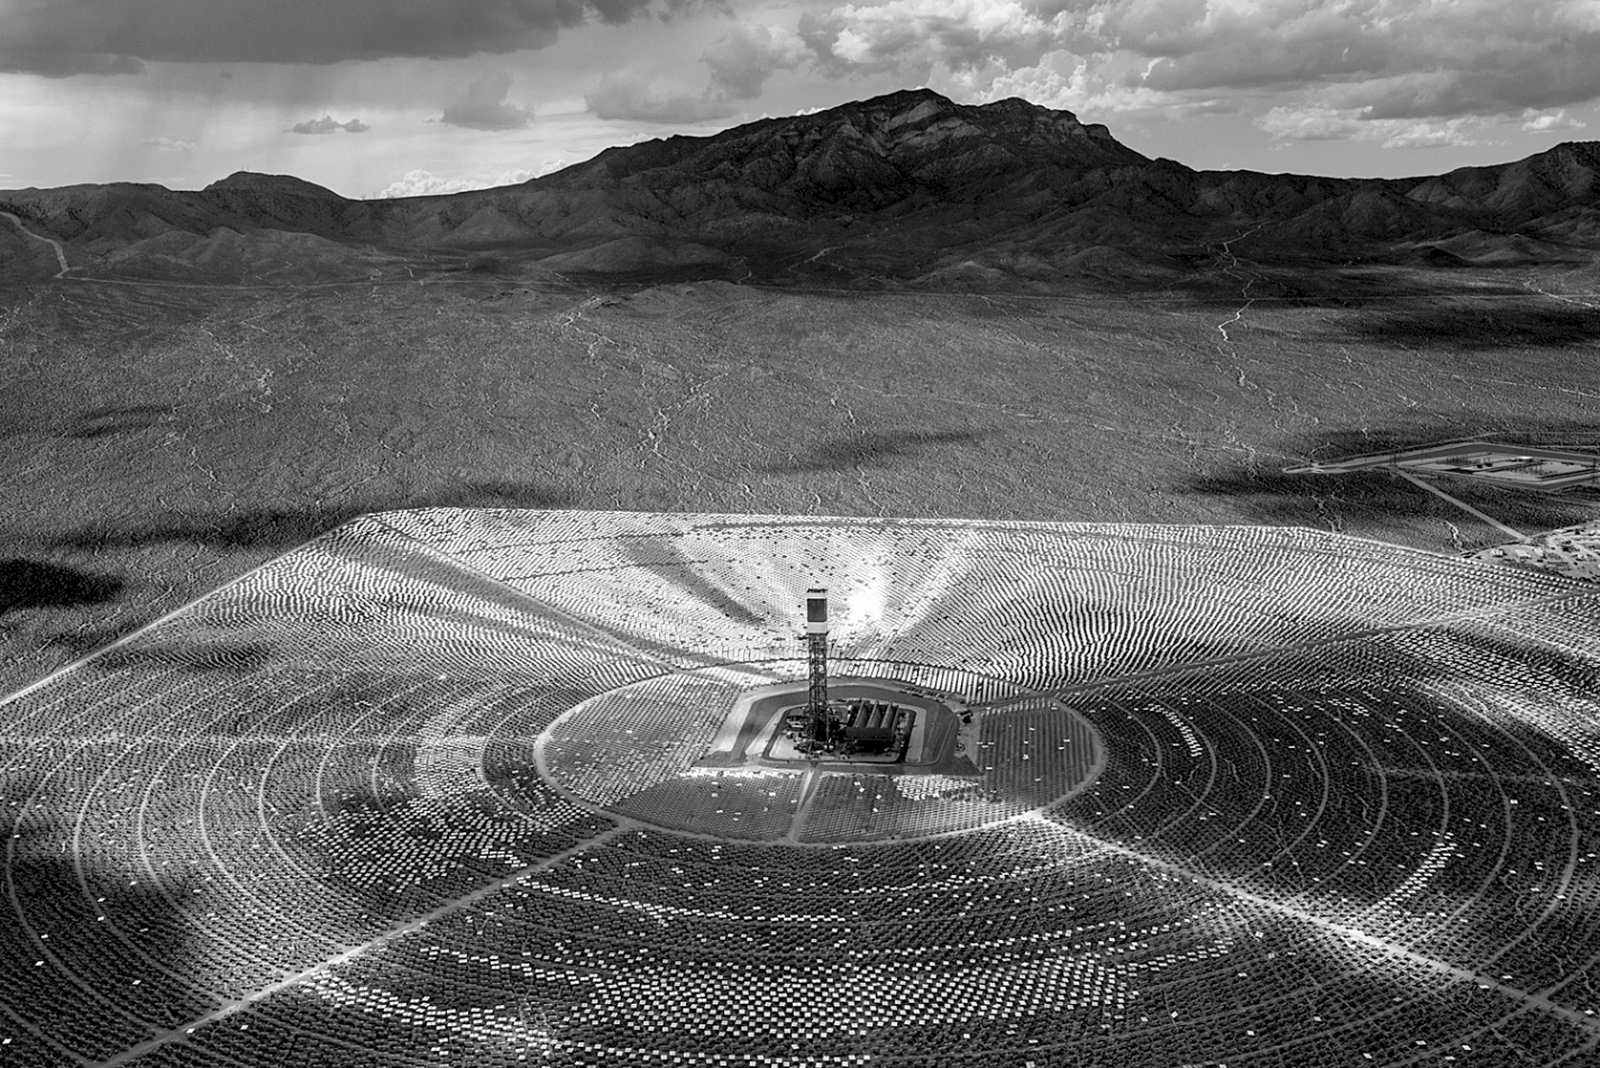 The Ivanpah solar power plant, Mojave Desert, California, 2013; photograph by Jamey Stillings from his book The Evolution of Ivanpah Solar, published by Steidl. It is also in the exhibition 'Changing Circumstances: Looking at the Future of the Planet,' at the FotoFest 2016 Biennial, Houston, March 12–April 24, with a catalog published by Schilt.